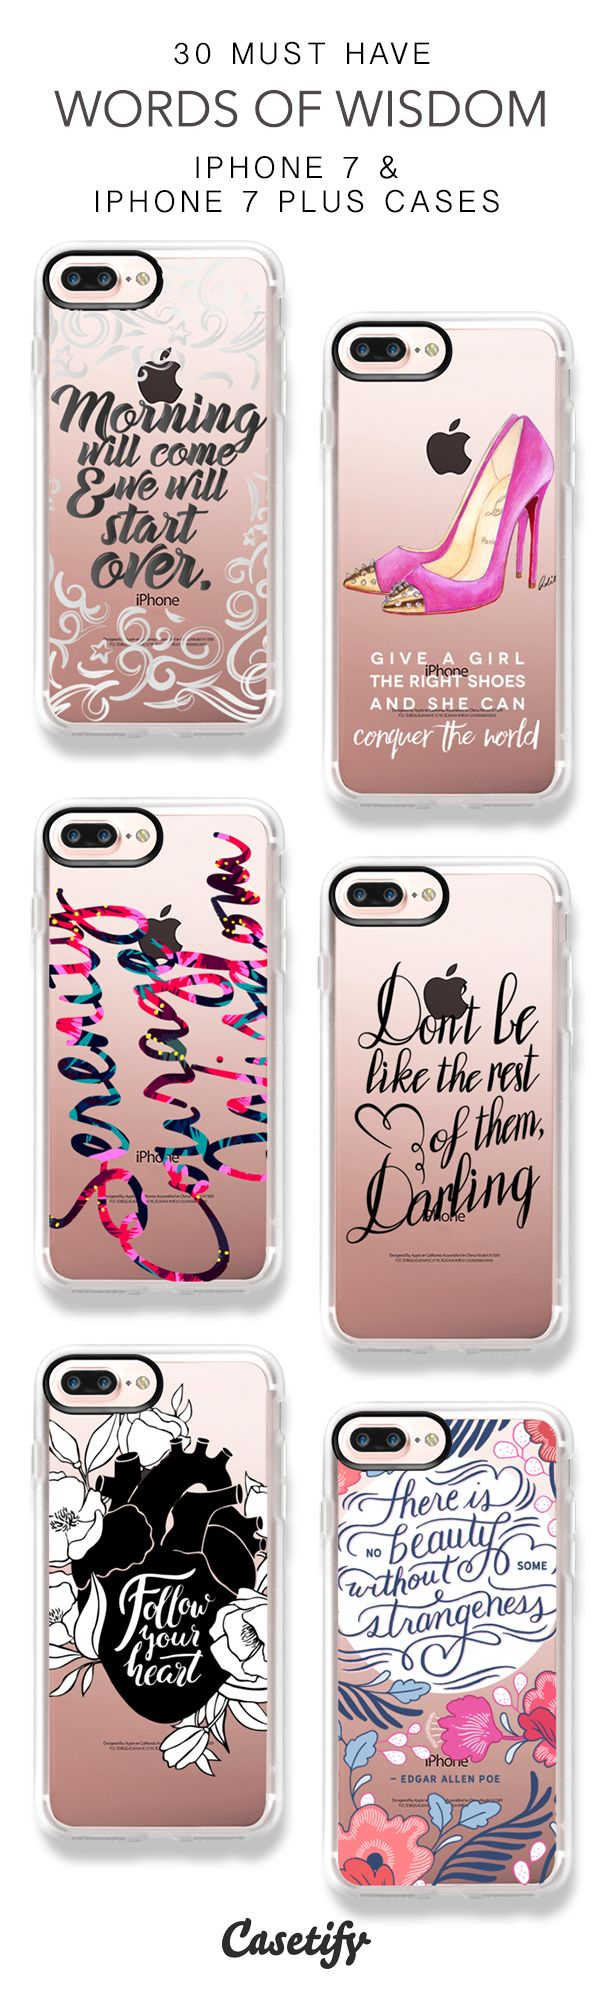 30 Must Have Words Of Wisdom Protective iPhone 7 Cases and iPhone 7 Plus Cases. More Quotes iPhone case here > https://www.casetify.com/collections/top_100_designs#/?vc=Bu1I9KrawJ (scheduled via http://www.tailwindapp.com?utm_source=pinterest&utm_medium=twpin&utm_content=post158229259&utm_campaign=scheduler_attribution)